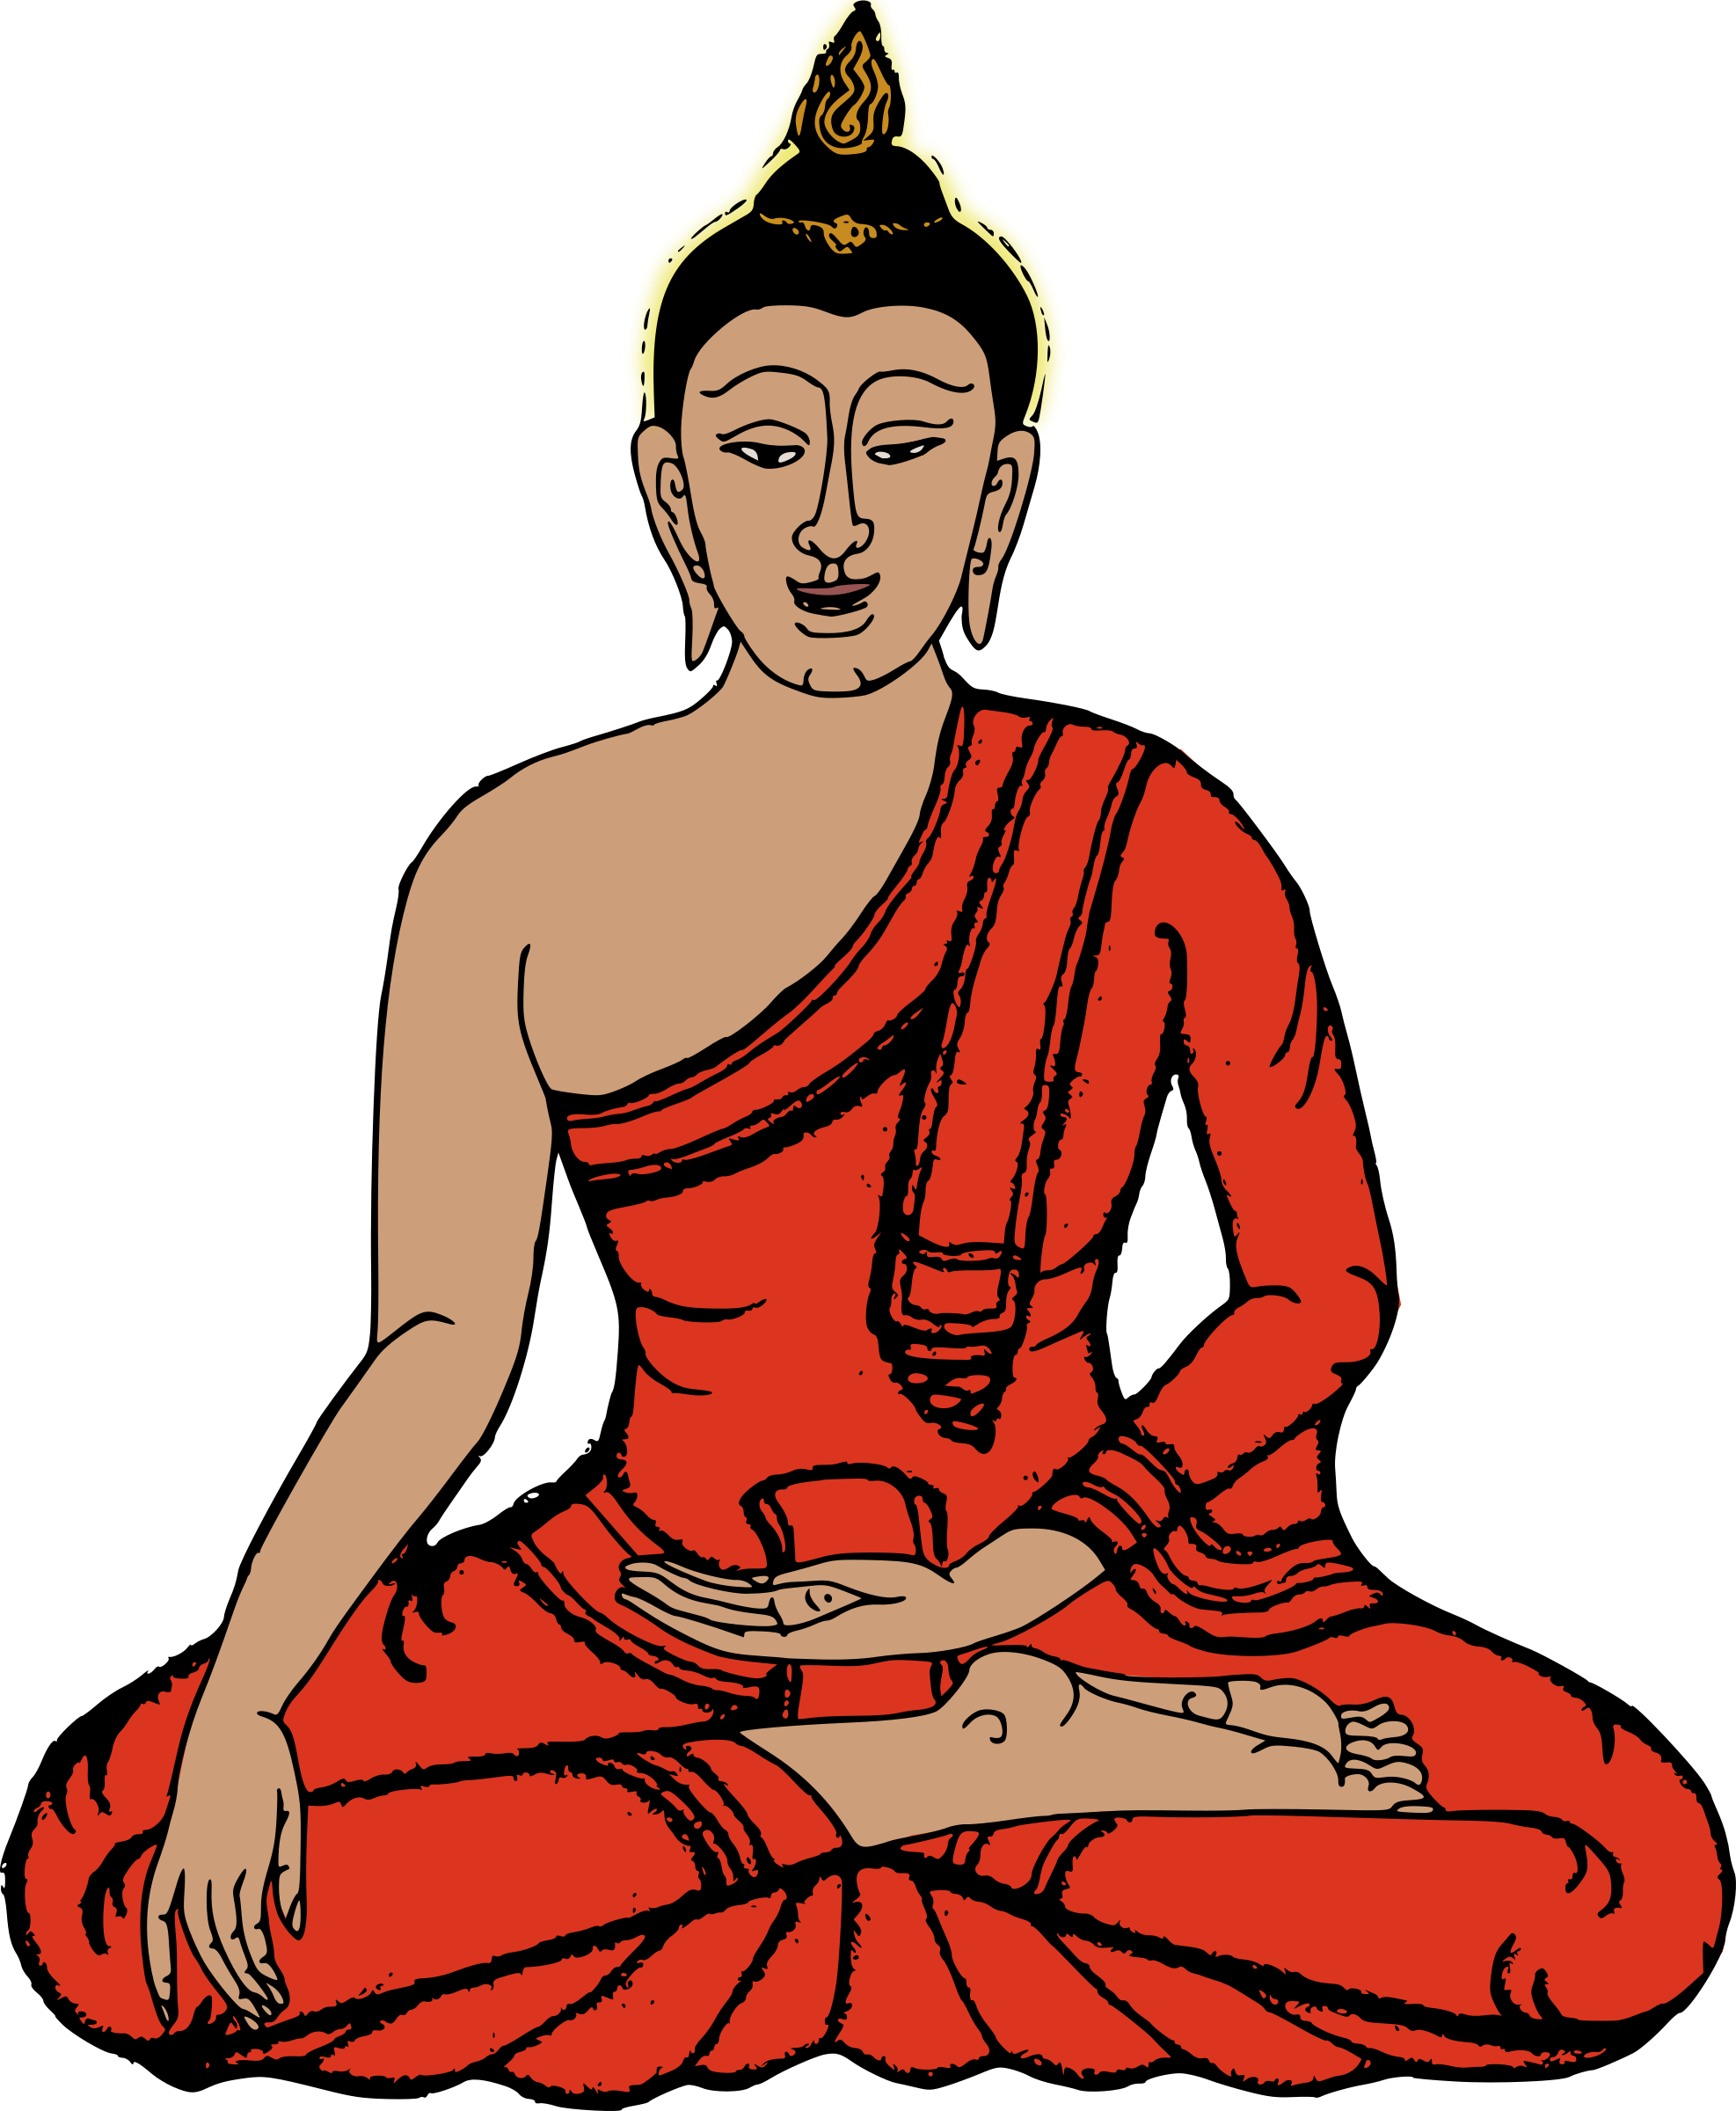 image library library Sitting big image png. Buddha clipart character.